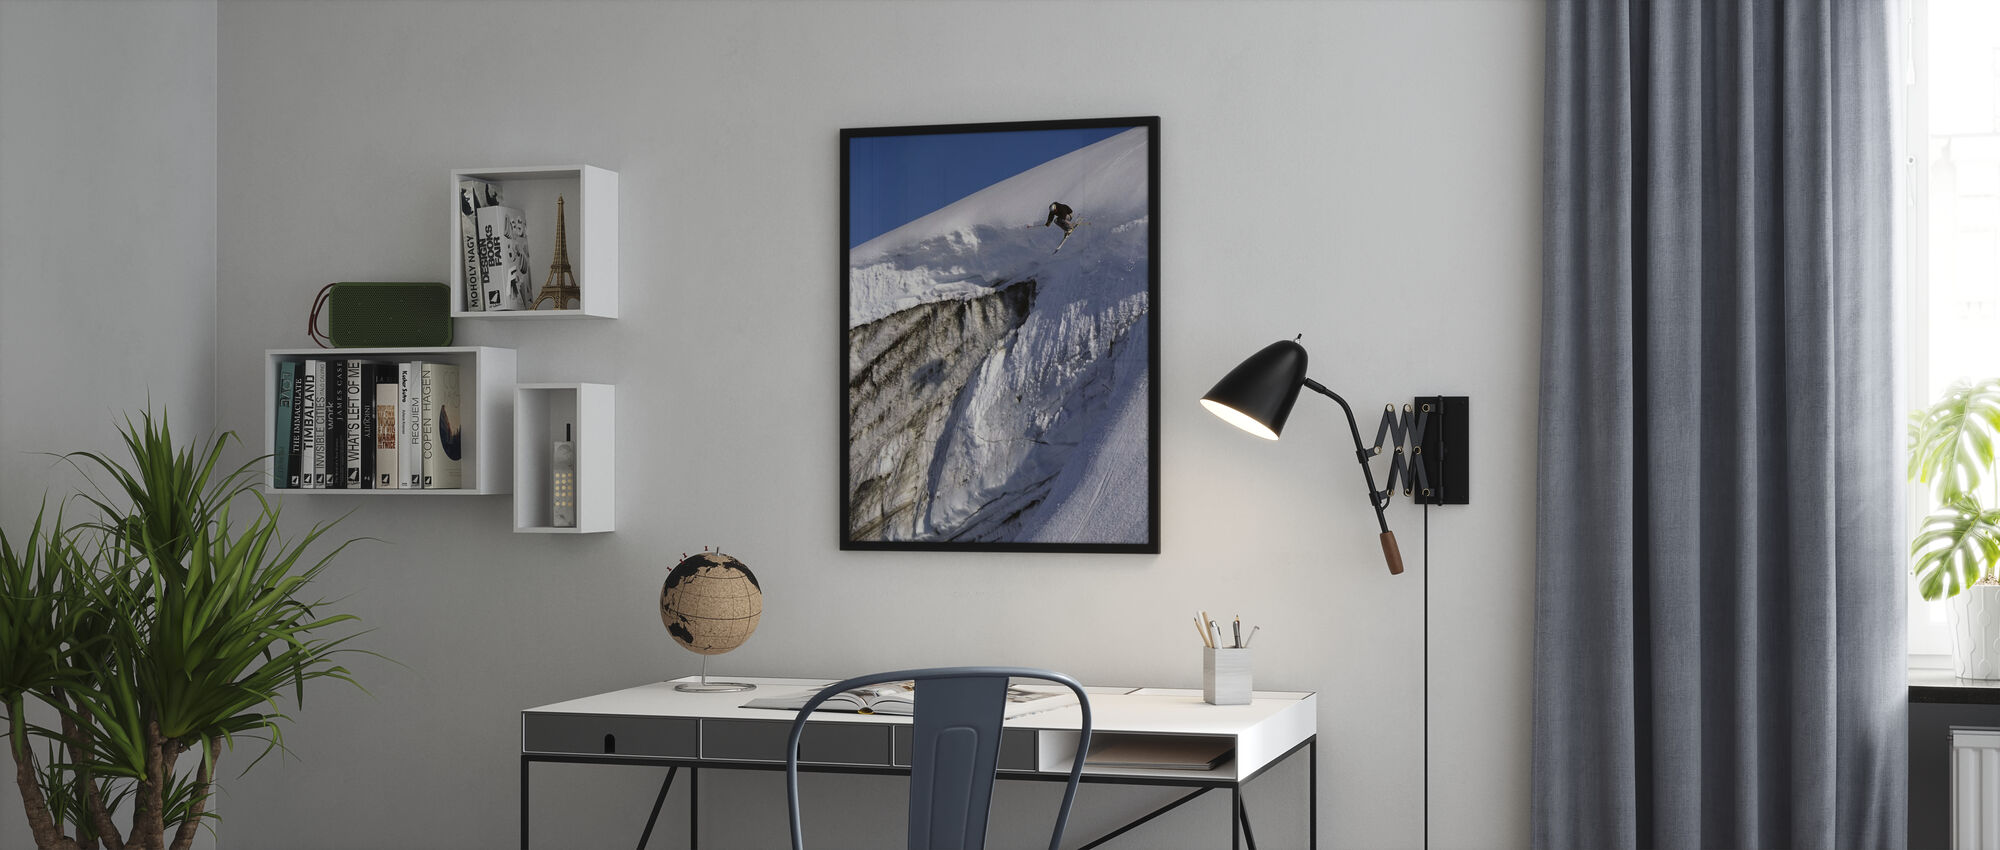 Skiing on the Apussuit Glacier - Framed print - Office